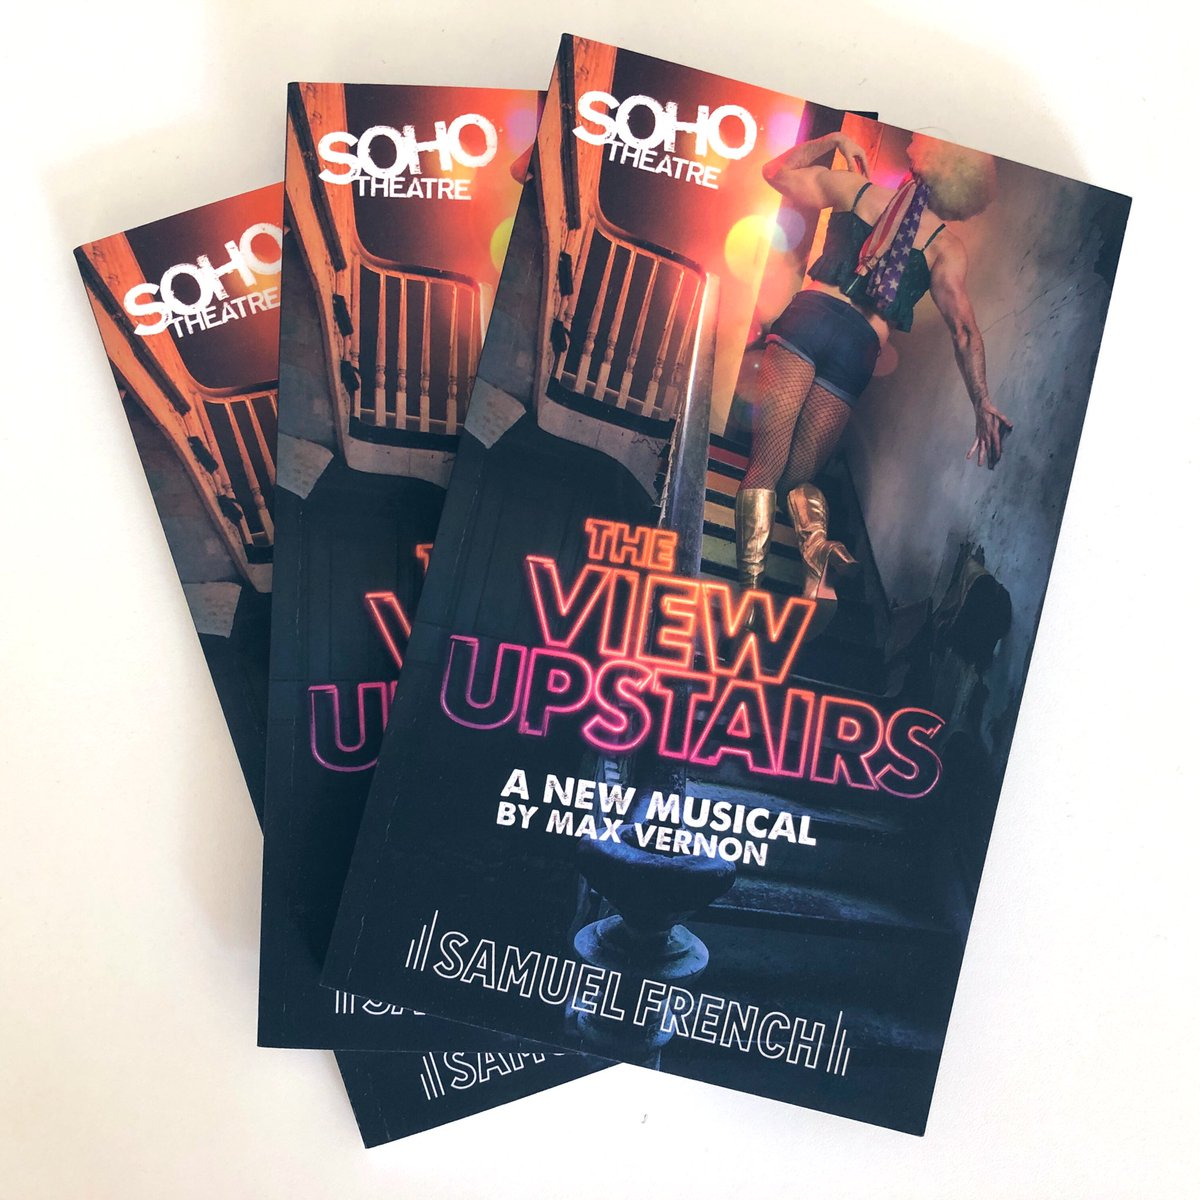 COMPETITION   To celebrate the end of our incredible run @sohotheatre we're excited to offer our amazing fans the chance to win one of three copies of the show's playtext signed by our very own @maxvernon   Simply RT to be in with a chance of winning! <br>http://pic.twitter.com/29P0DUKSkV